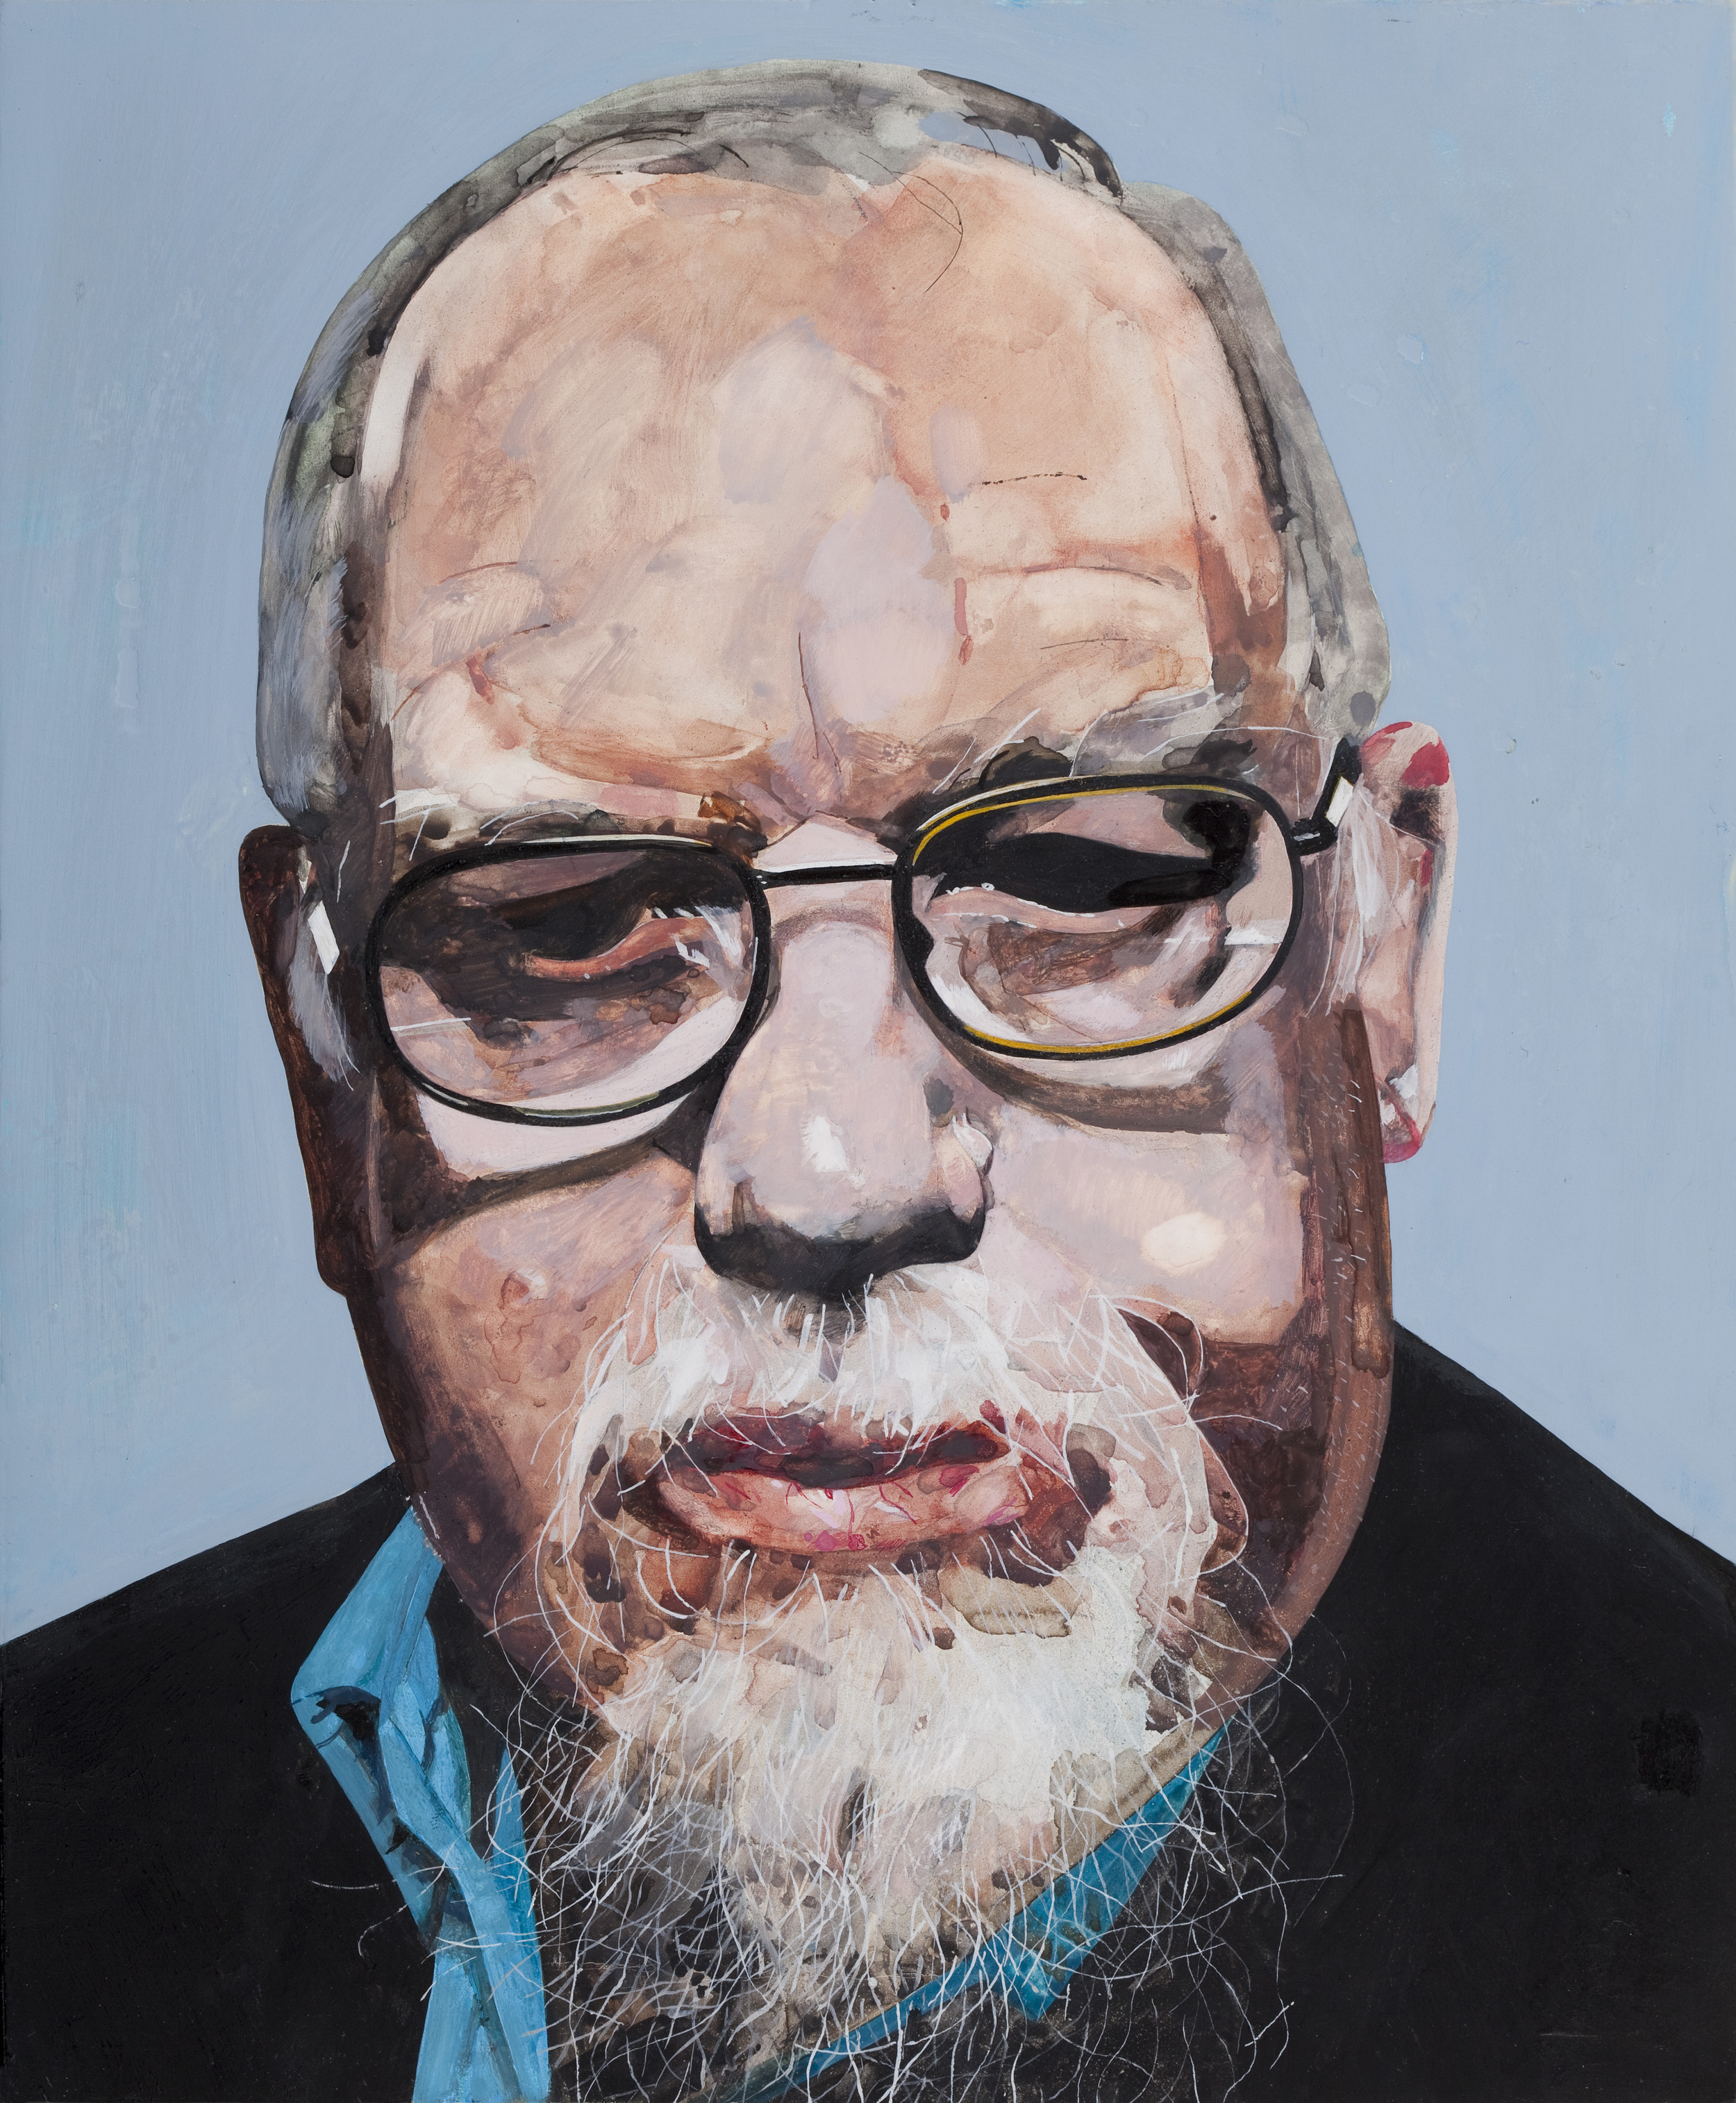 Copy of self-portrait by Sir Peter Blake.